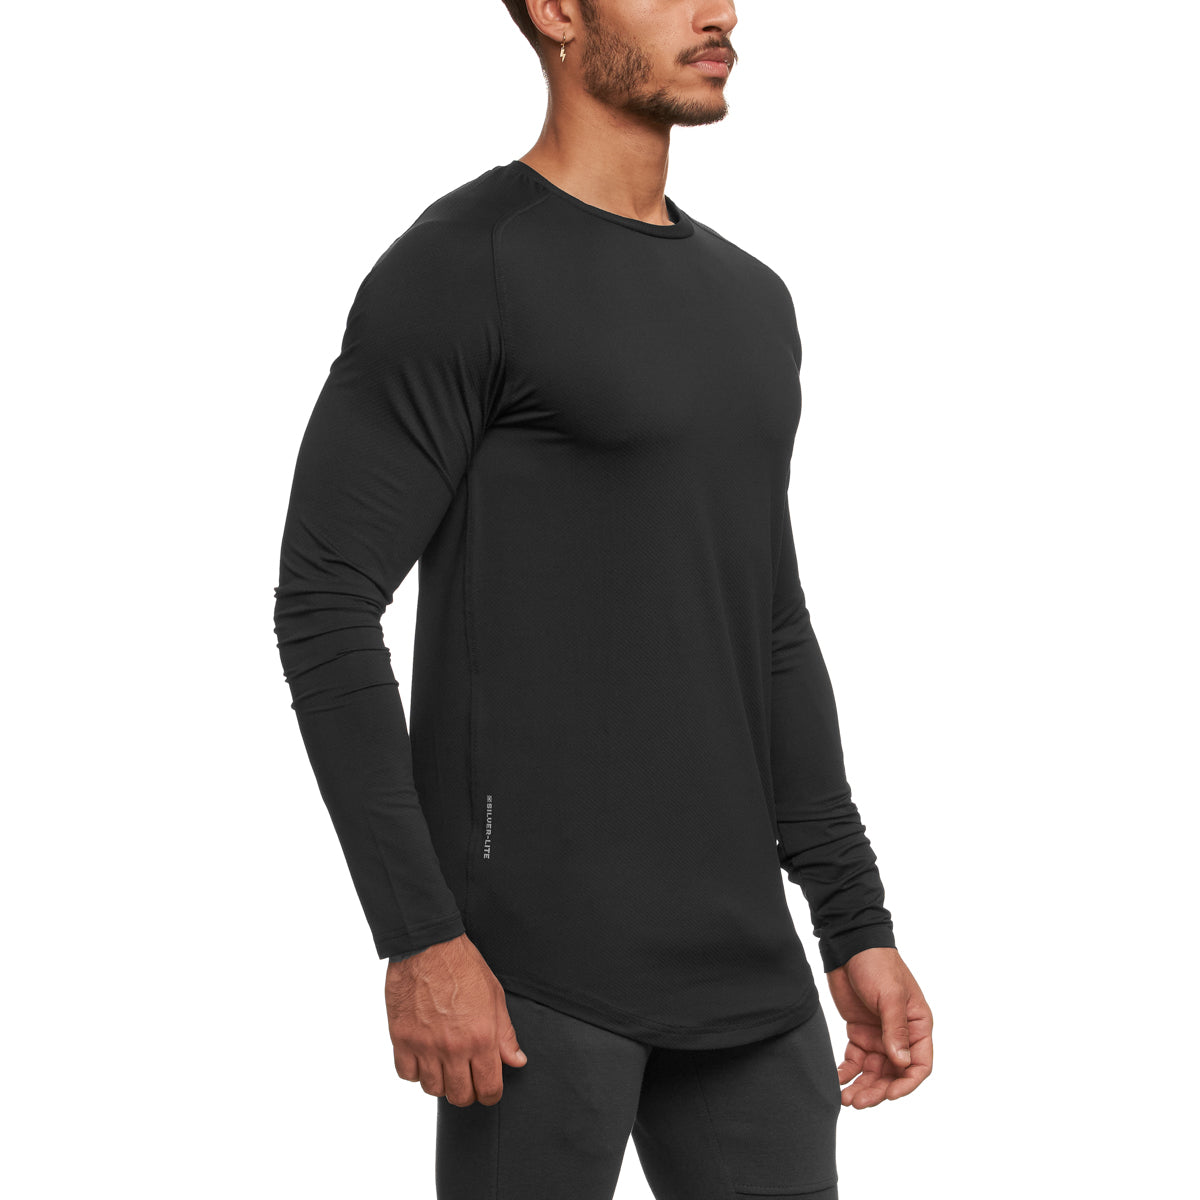 0149. Silver-Lite® Long Sleeve - Black